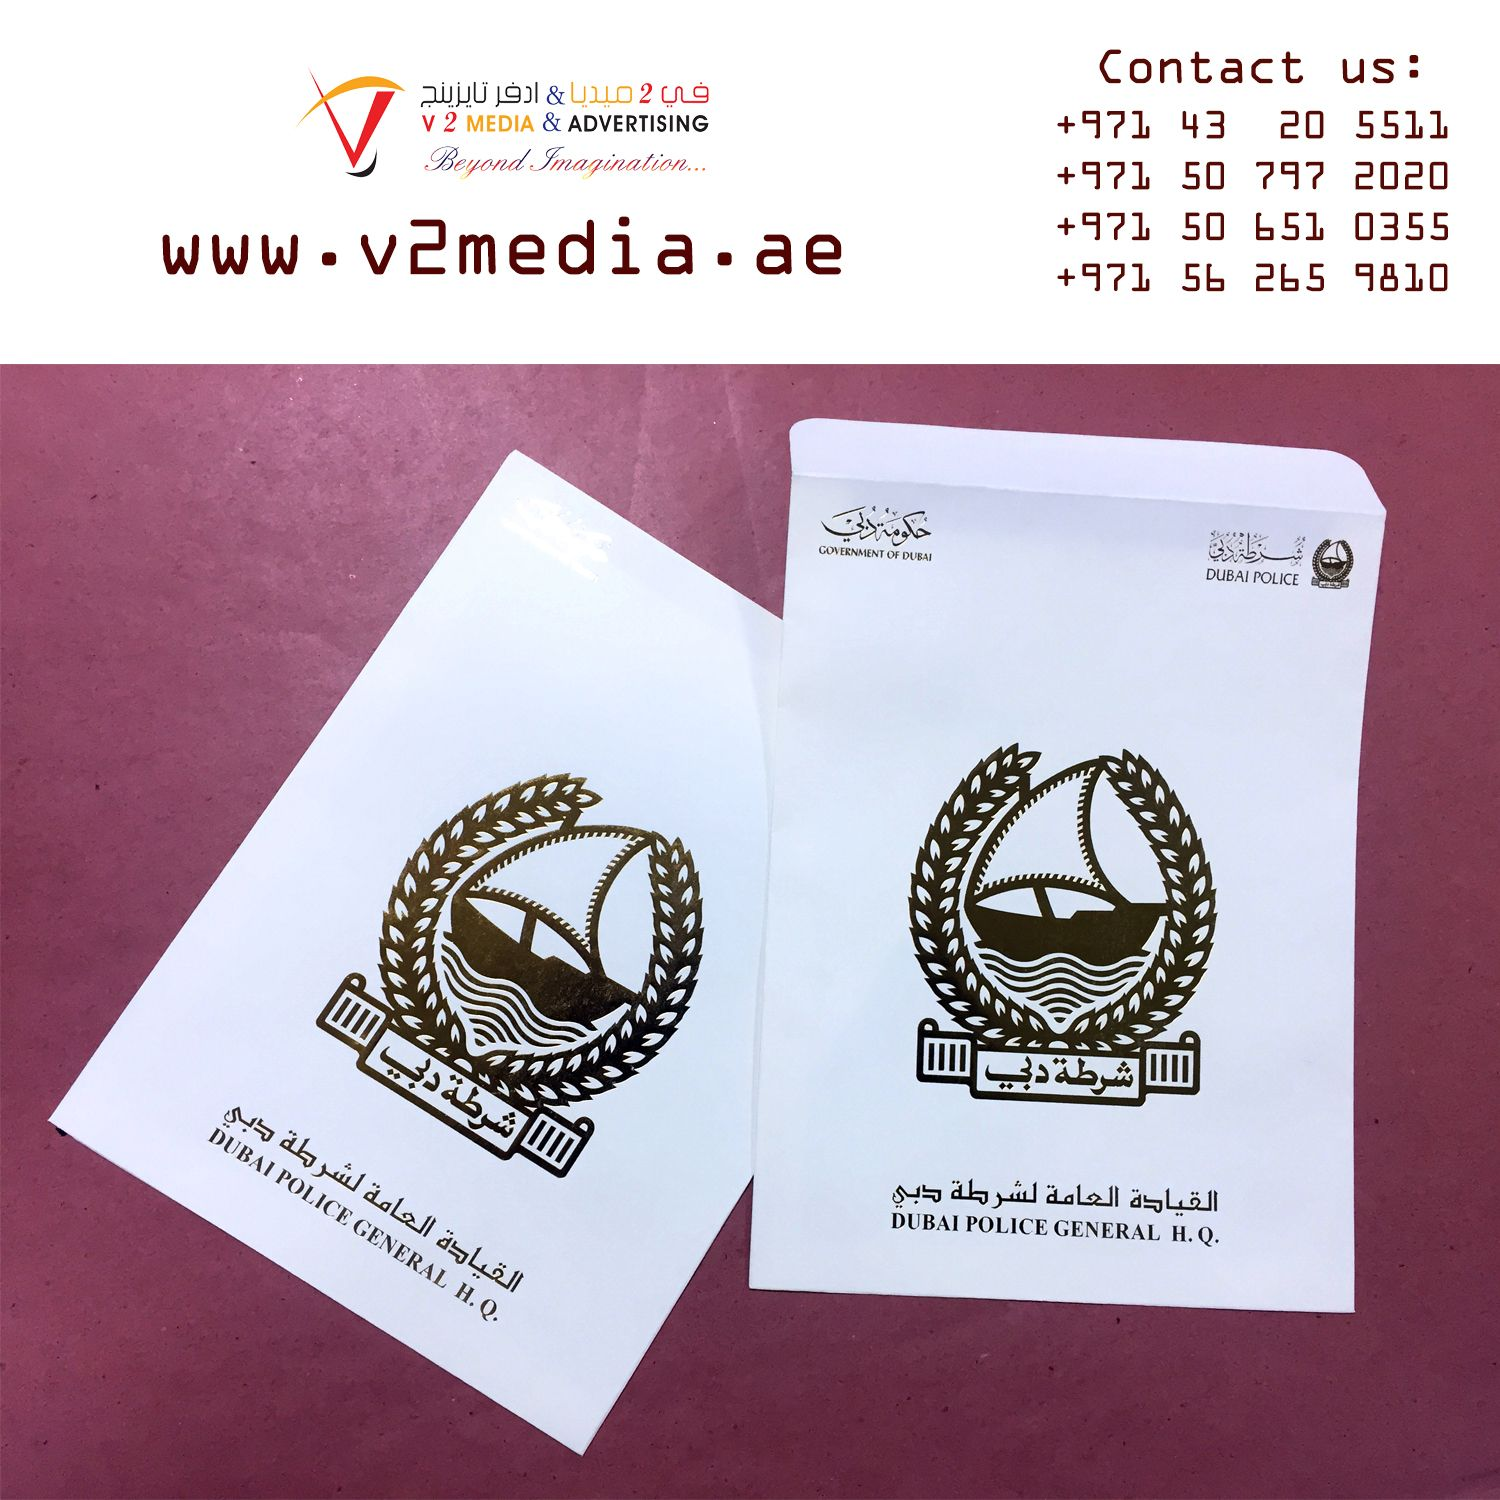 Sample envelope for Dubai Police General HQ layout By V2 Media ...